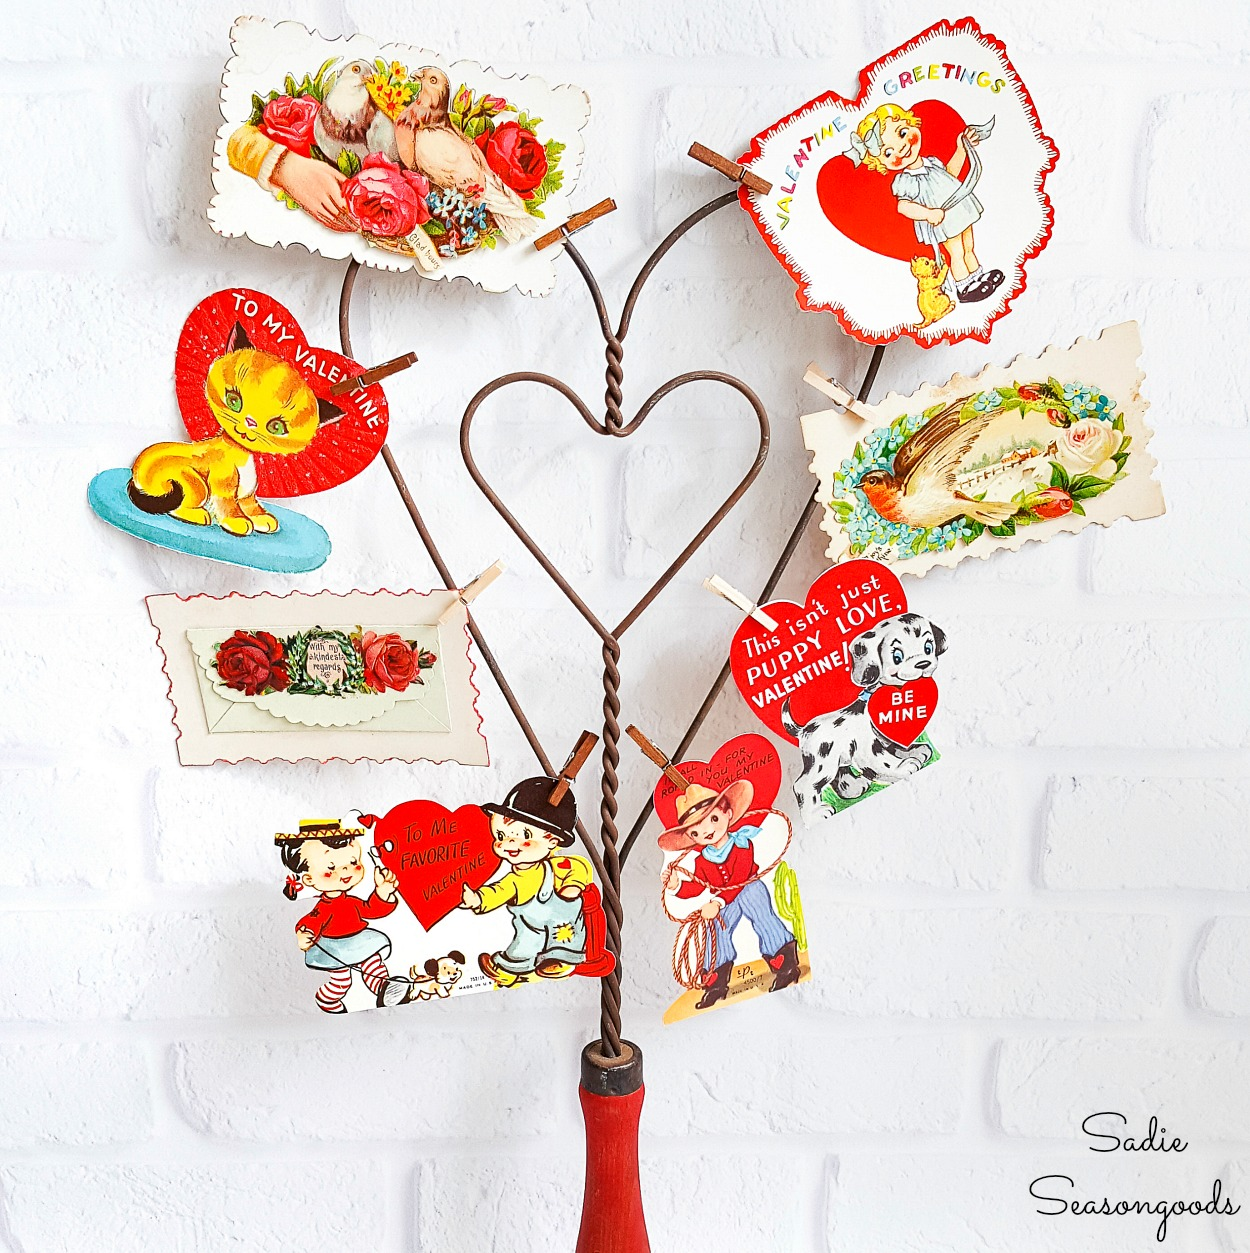 Vintage Valentine Decorations with a Carpet Beater